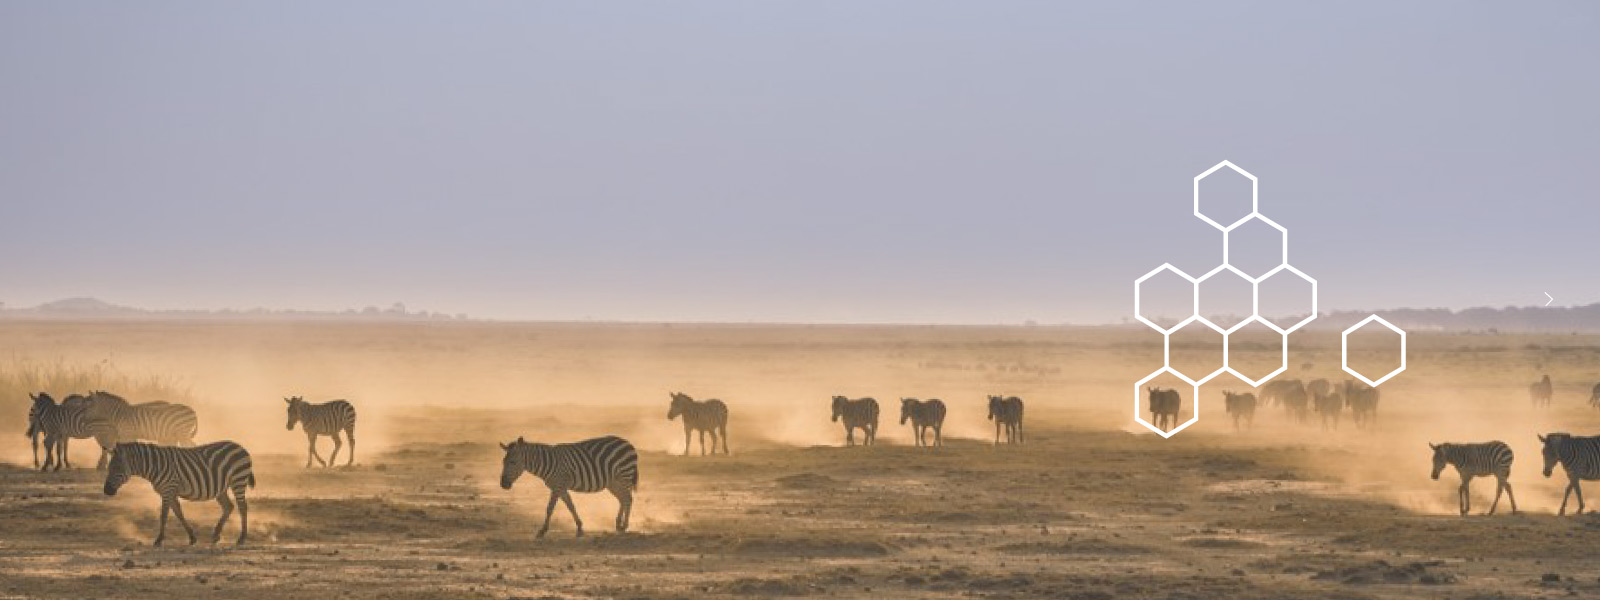 Photo of zebras in a dusty plain